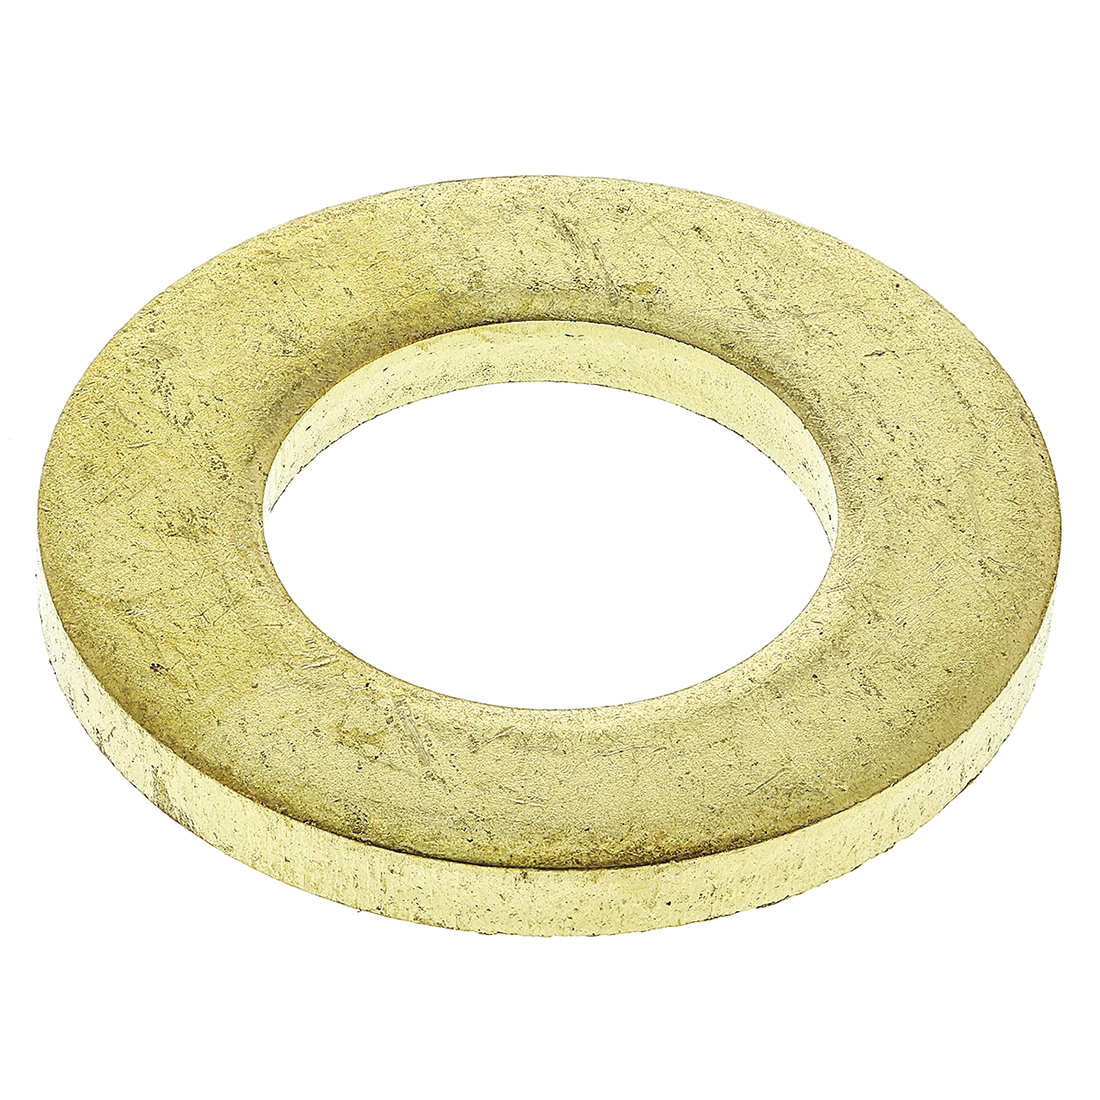 Brass Plain Washer, 2.5mm Thickness, M12 - 100 Pack